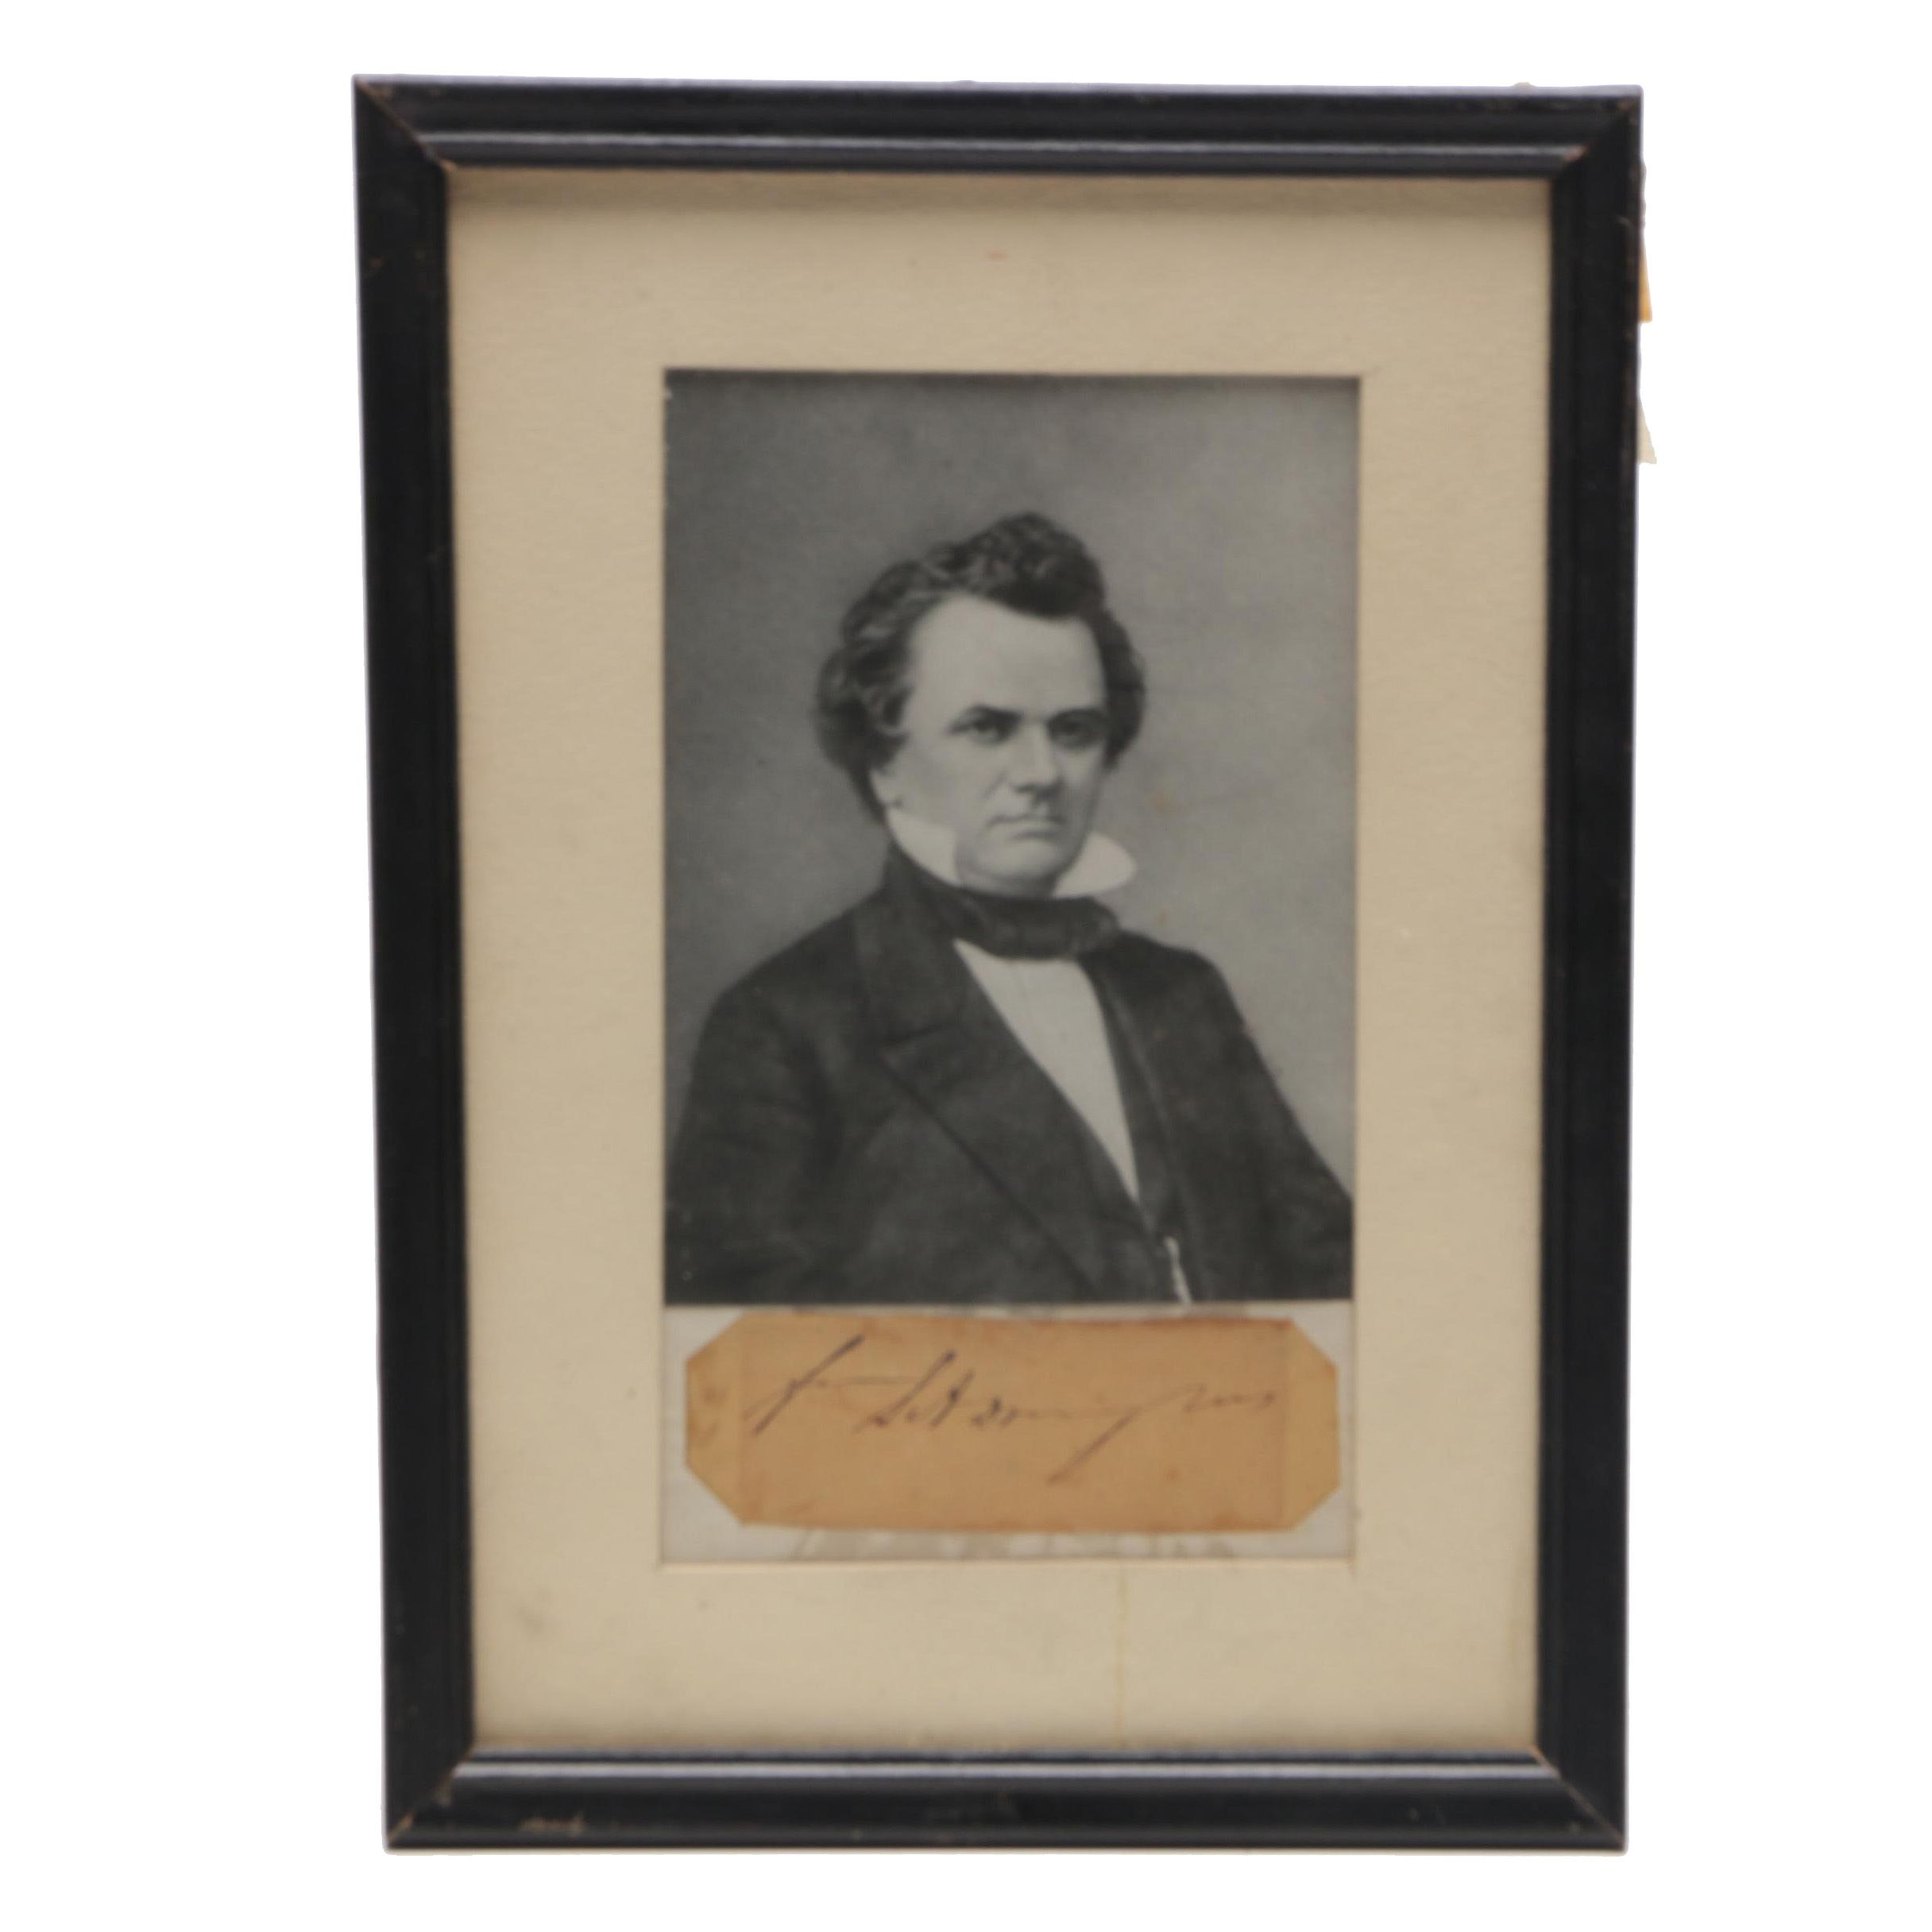 Stephen Douglas Cut Signature with Portrait Print, Circa Mid-19th Century